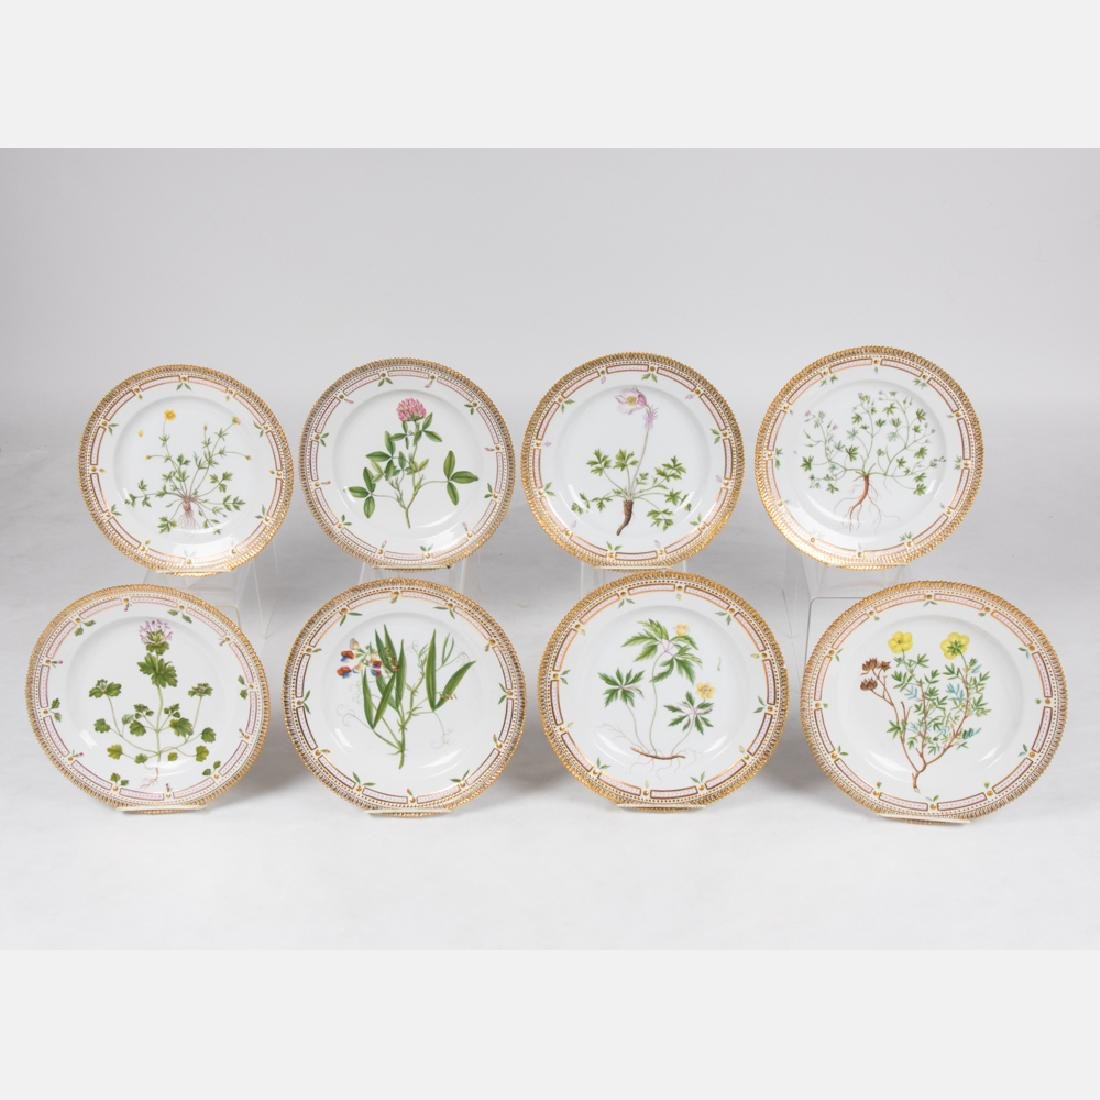 A Set of Eight Royal Copenhagen Porcelain Plates in the